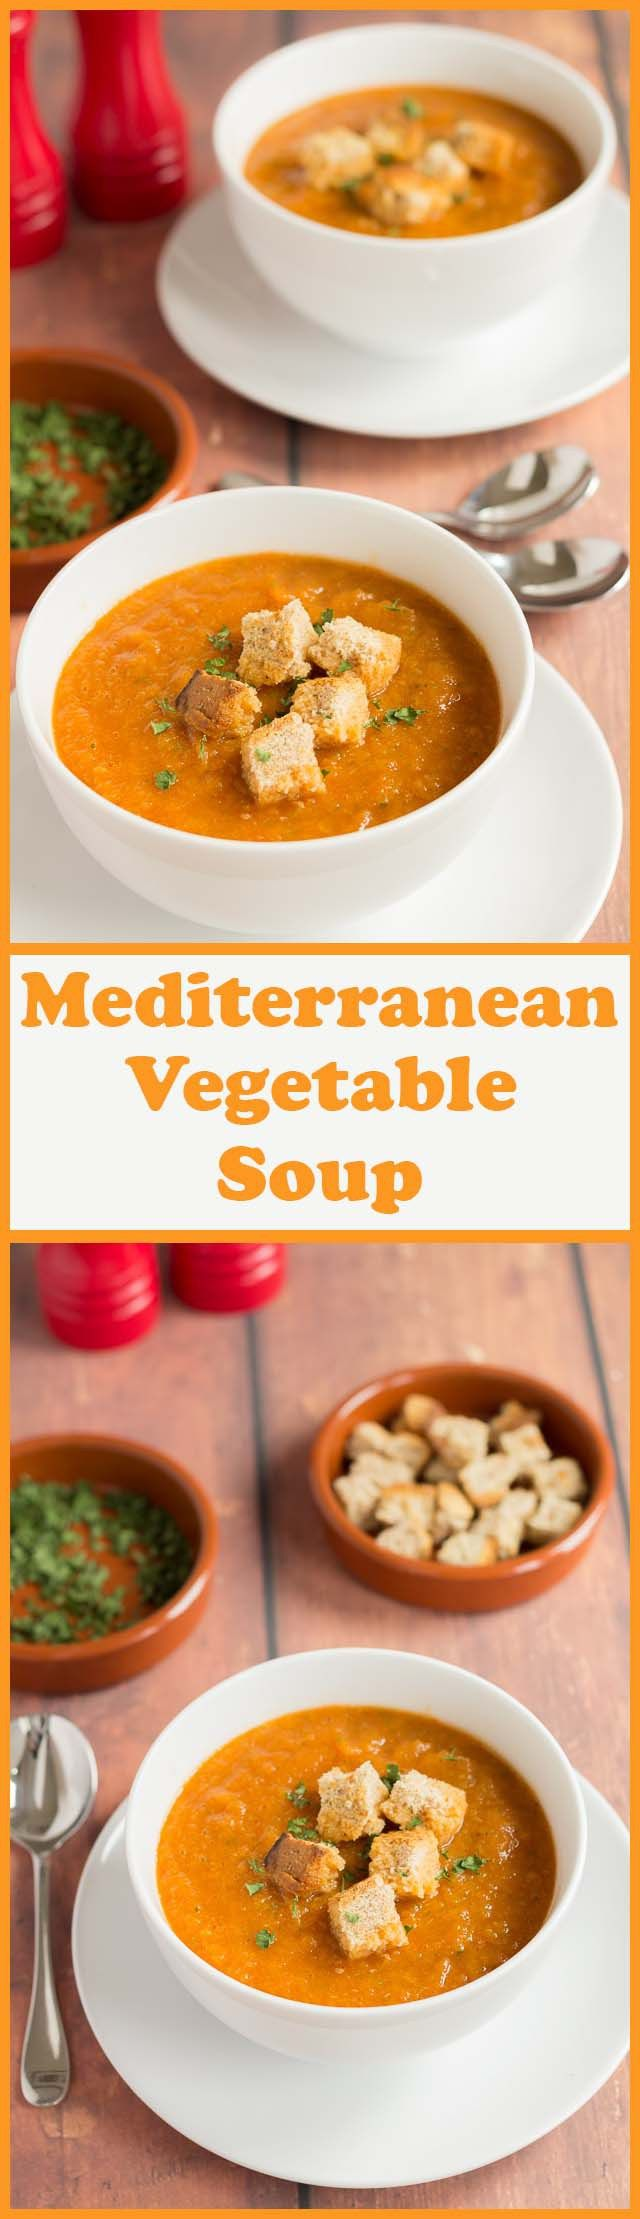 This Mediterranean vegetable soup is just 100 calories per serving and at the same time it's full of flavour and extremely filling. If you're feeling that you've over indulged a little recently, then this soup is a great aid to weight loss and will help you get right back in shape again!